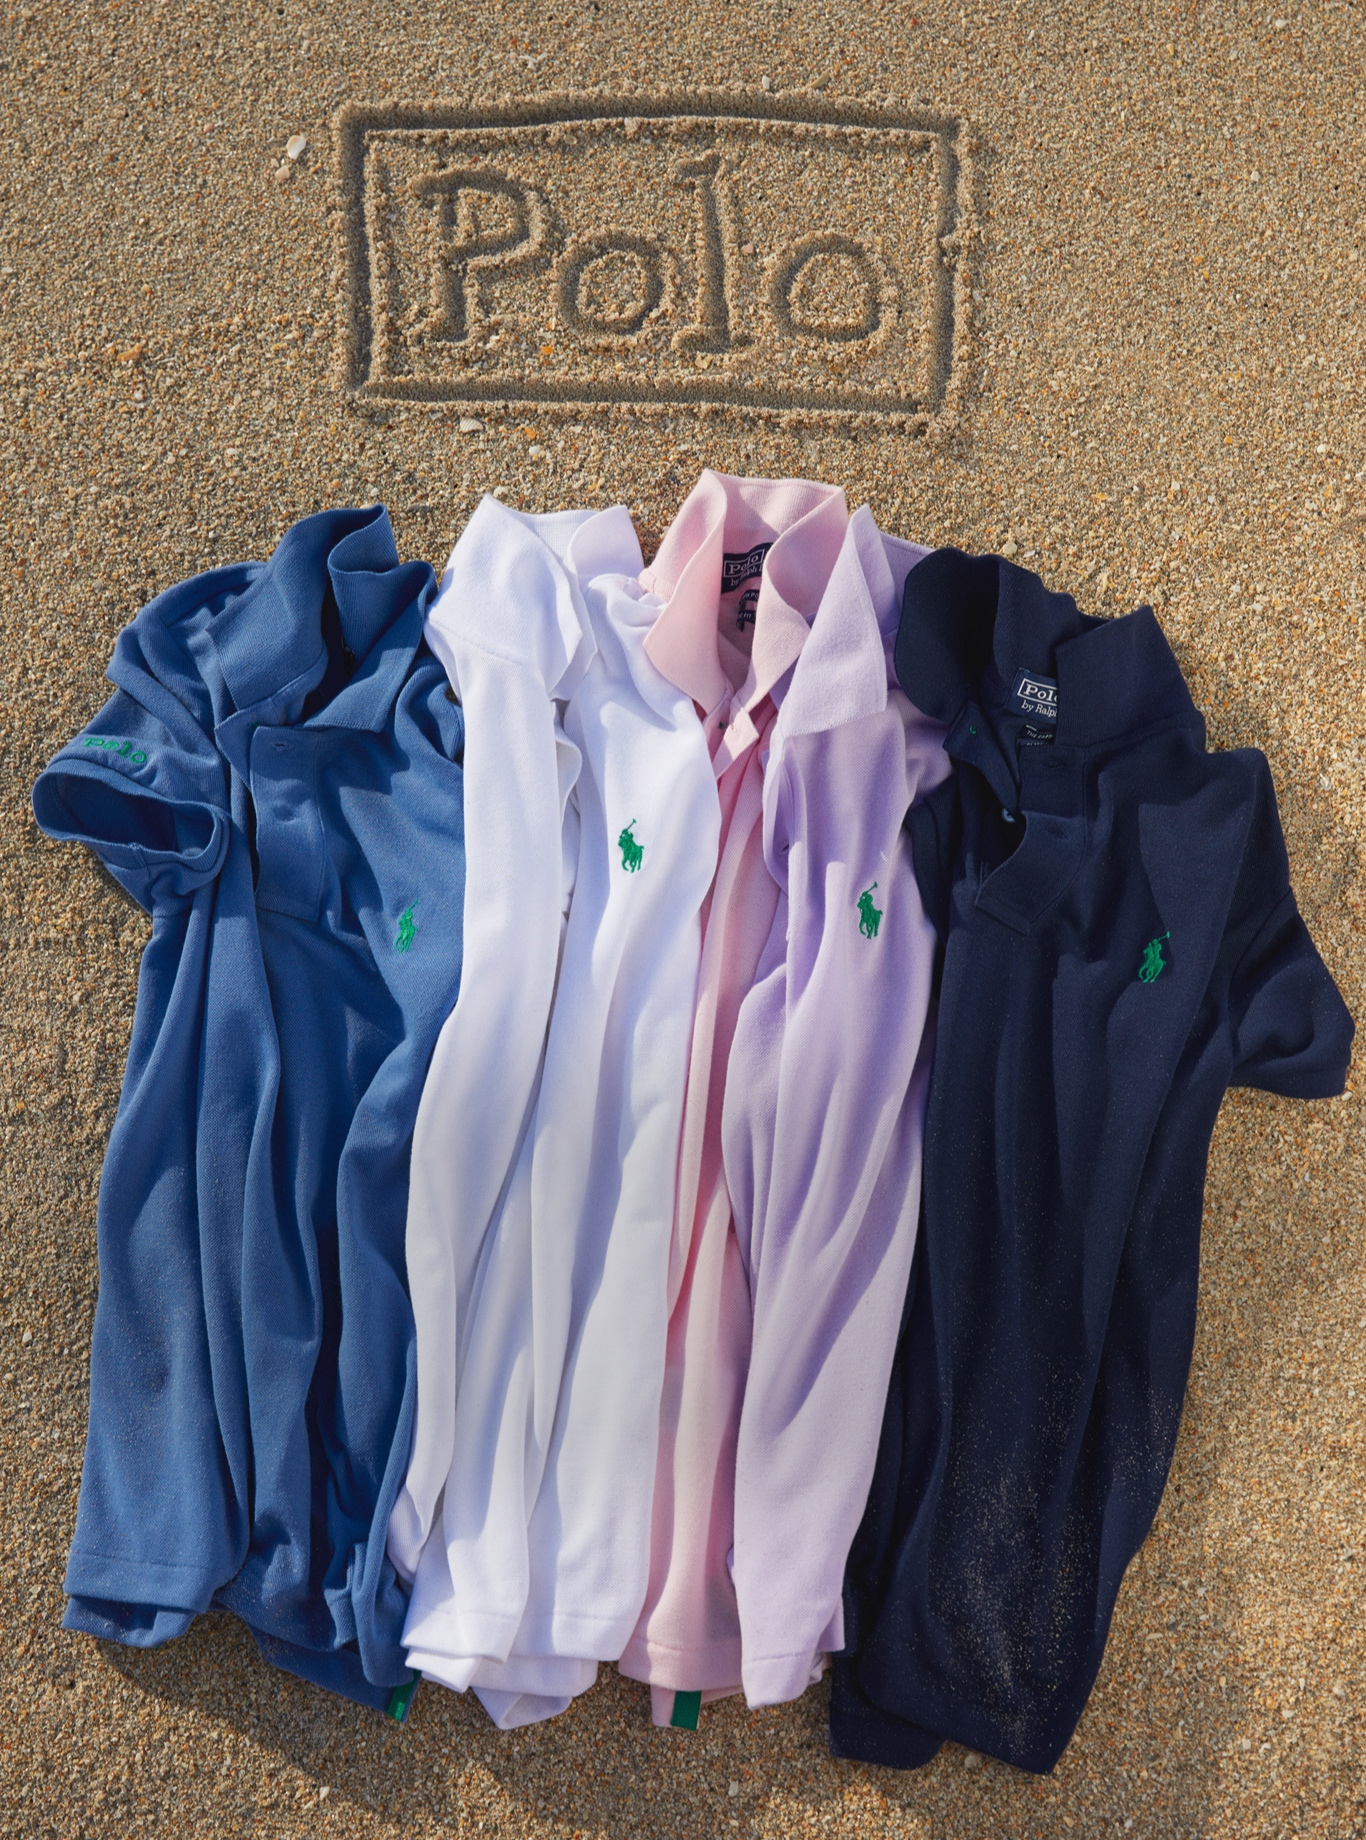 Earth Polo shirts in various colors on sandy beach.